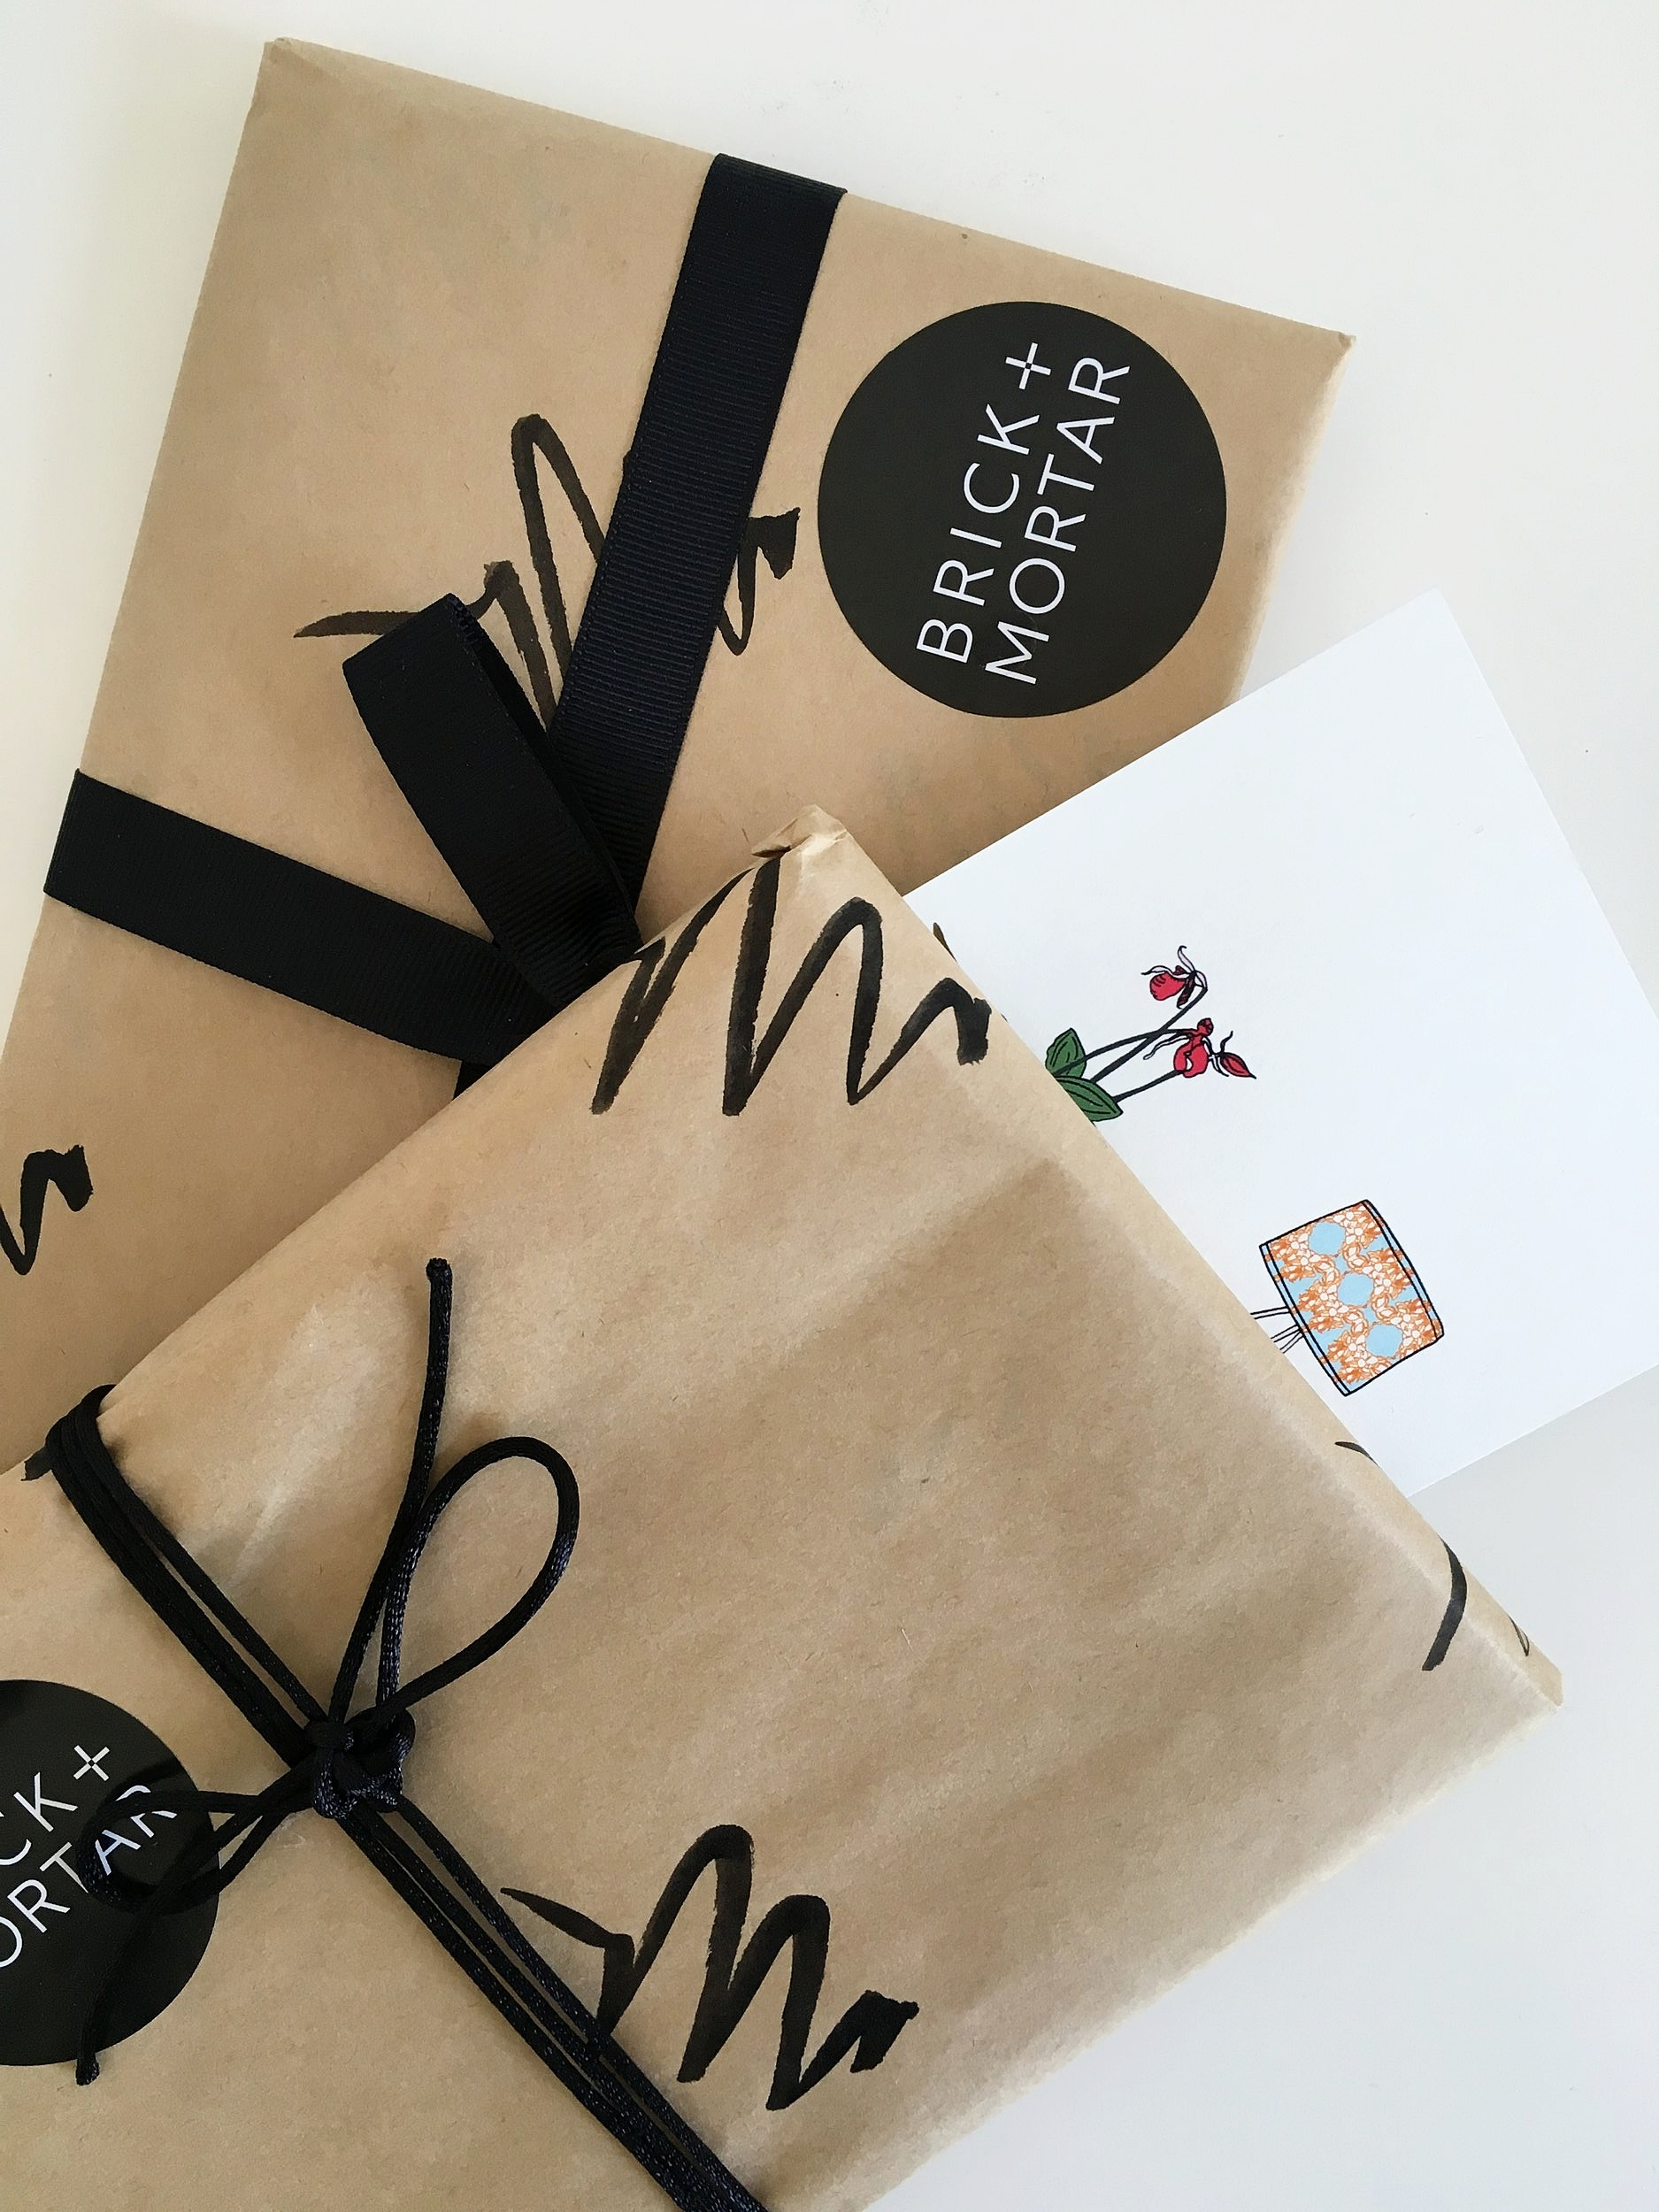 Sarah's touch on her gifts -the simplicity of the little swirls drawn on paper